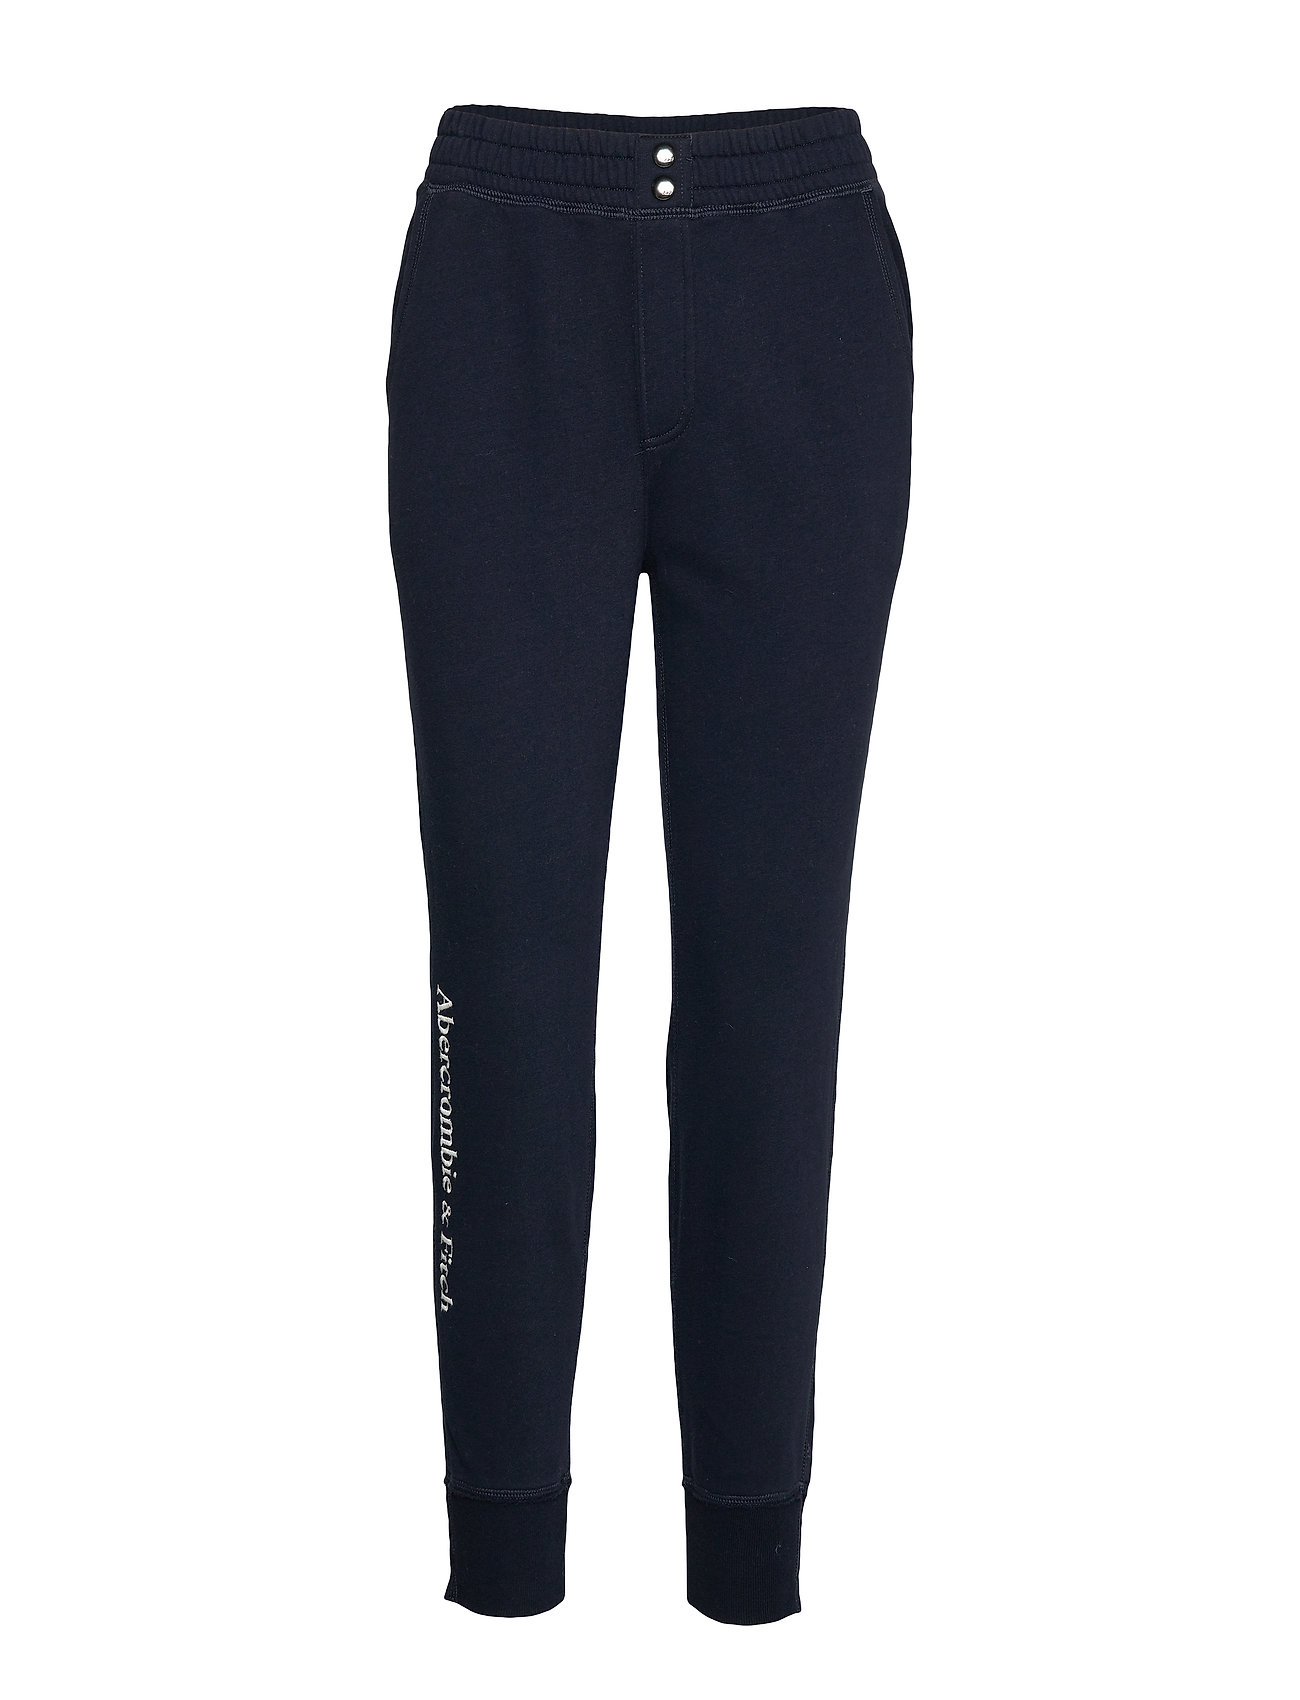 Abercrombie & Fitch High Rise Jogger - NAVY DD